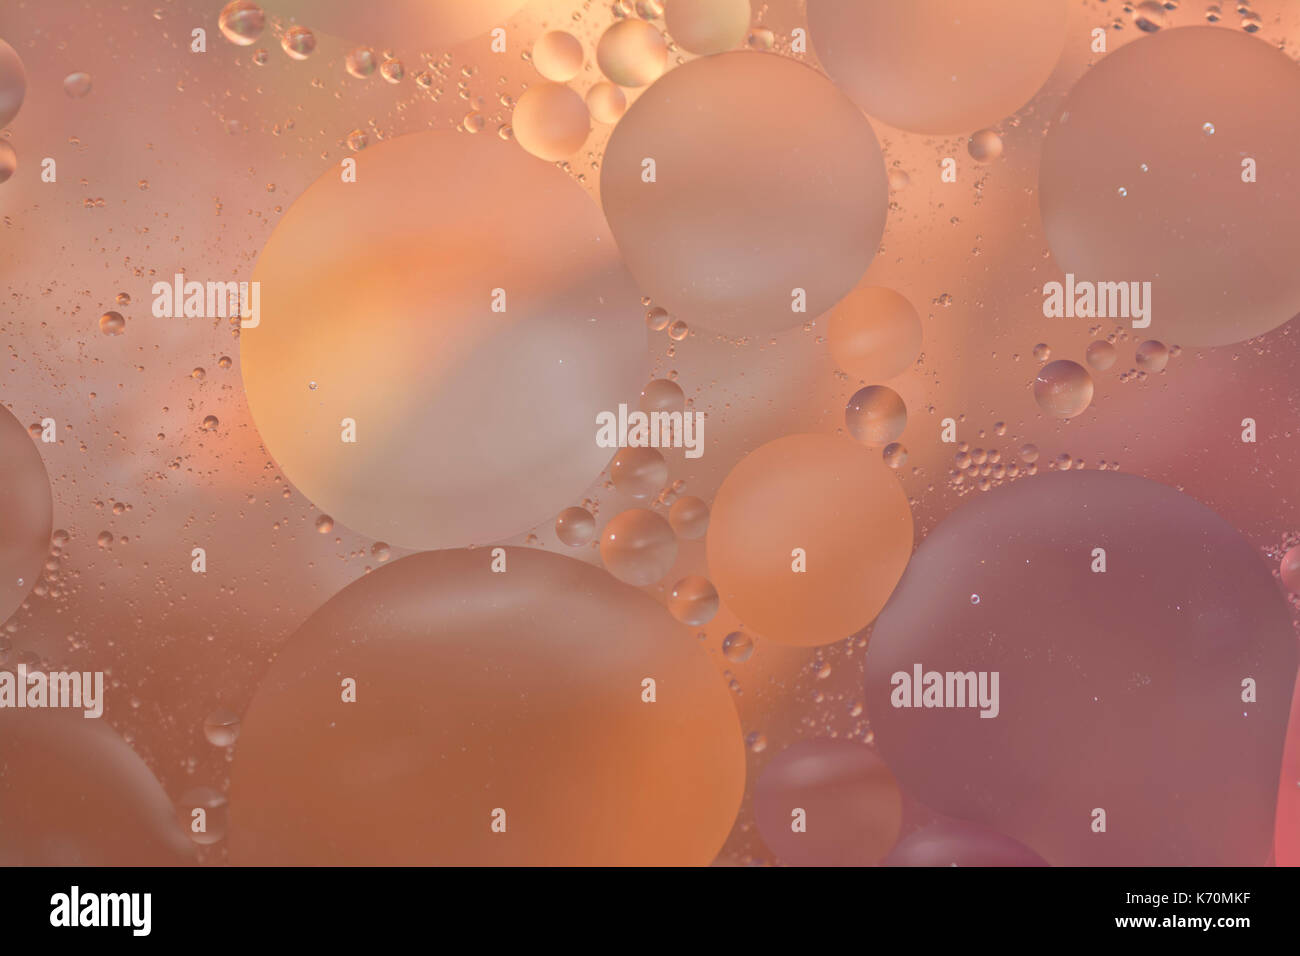 Pastel Orange Peach Oil And Water Bubble Abstract Background Wallpaper